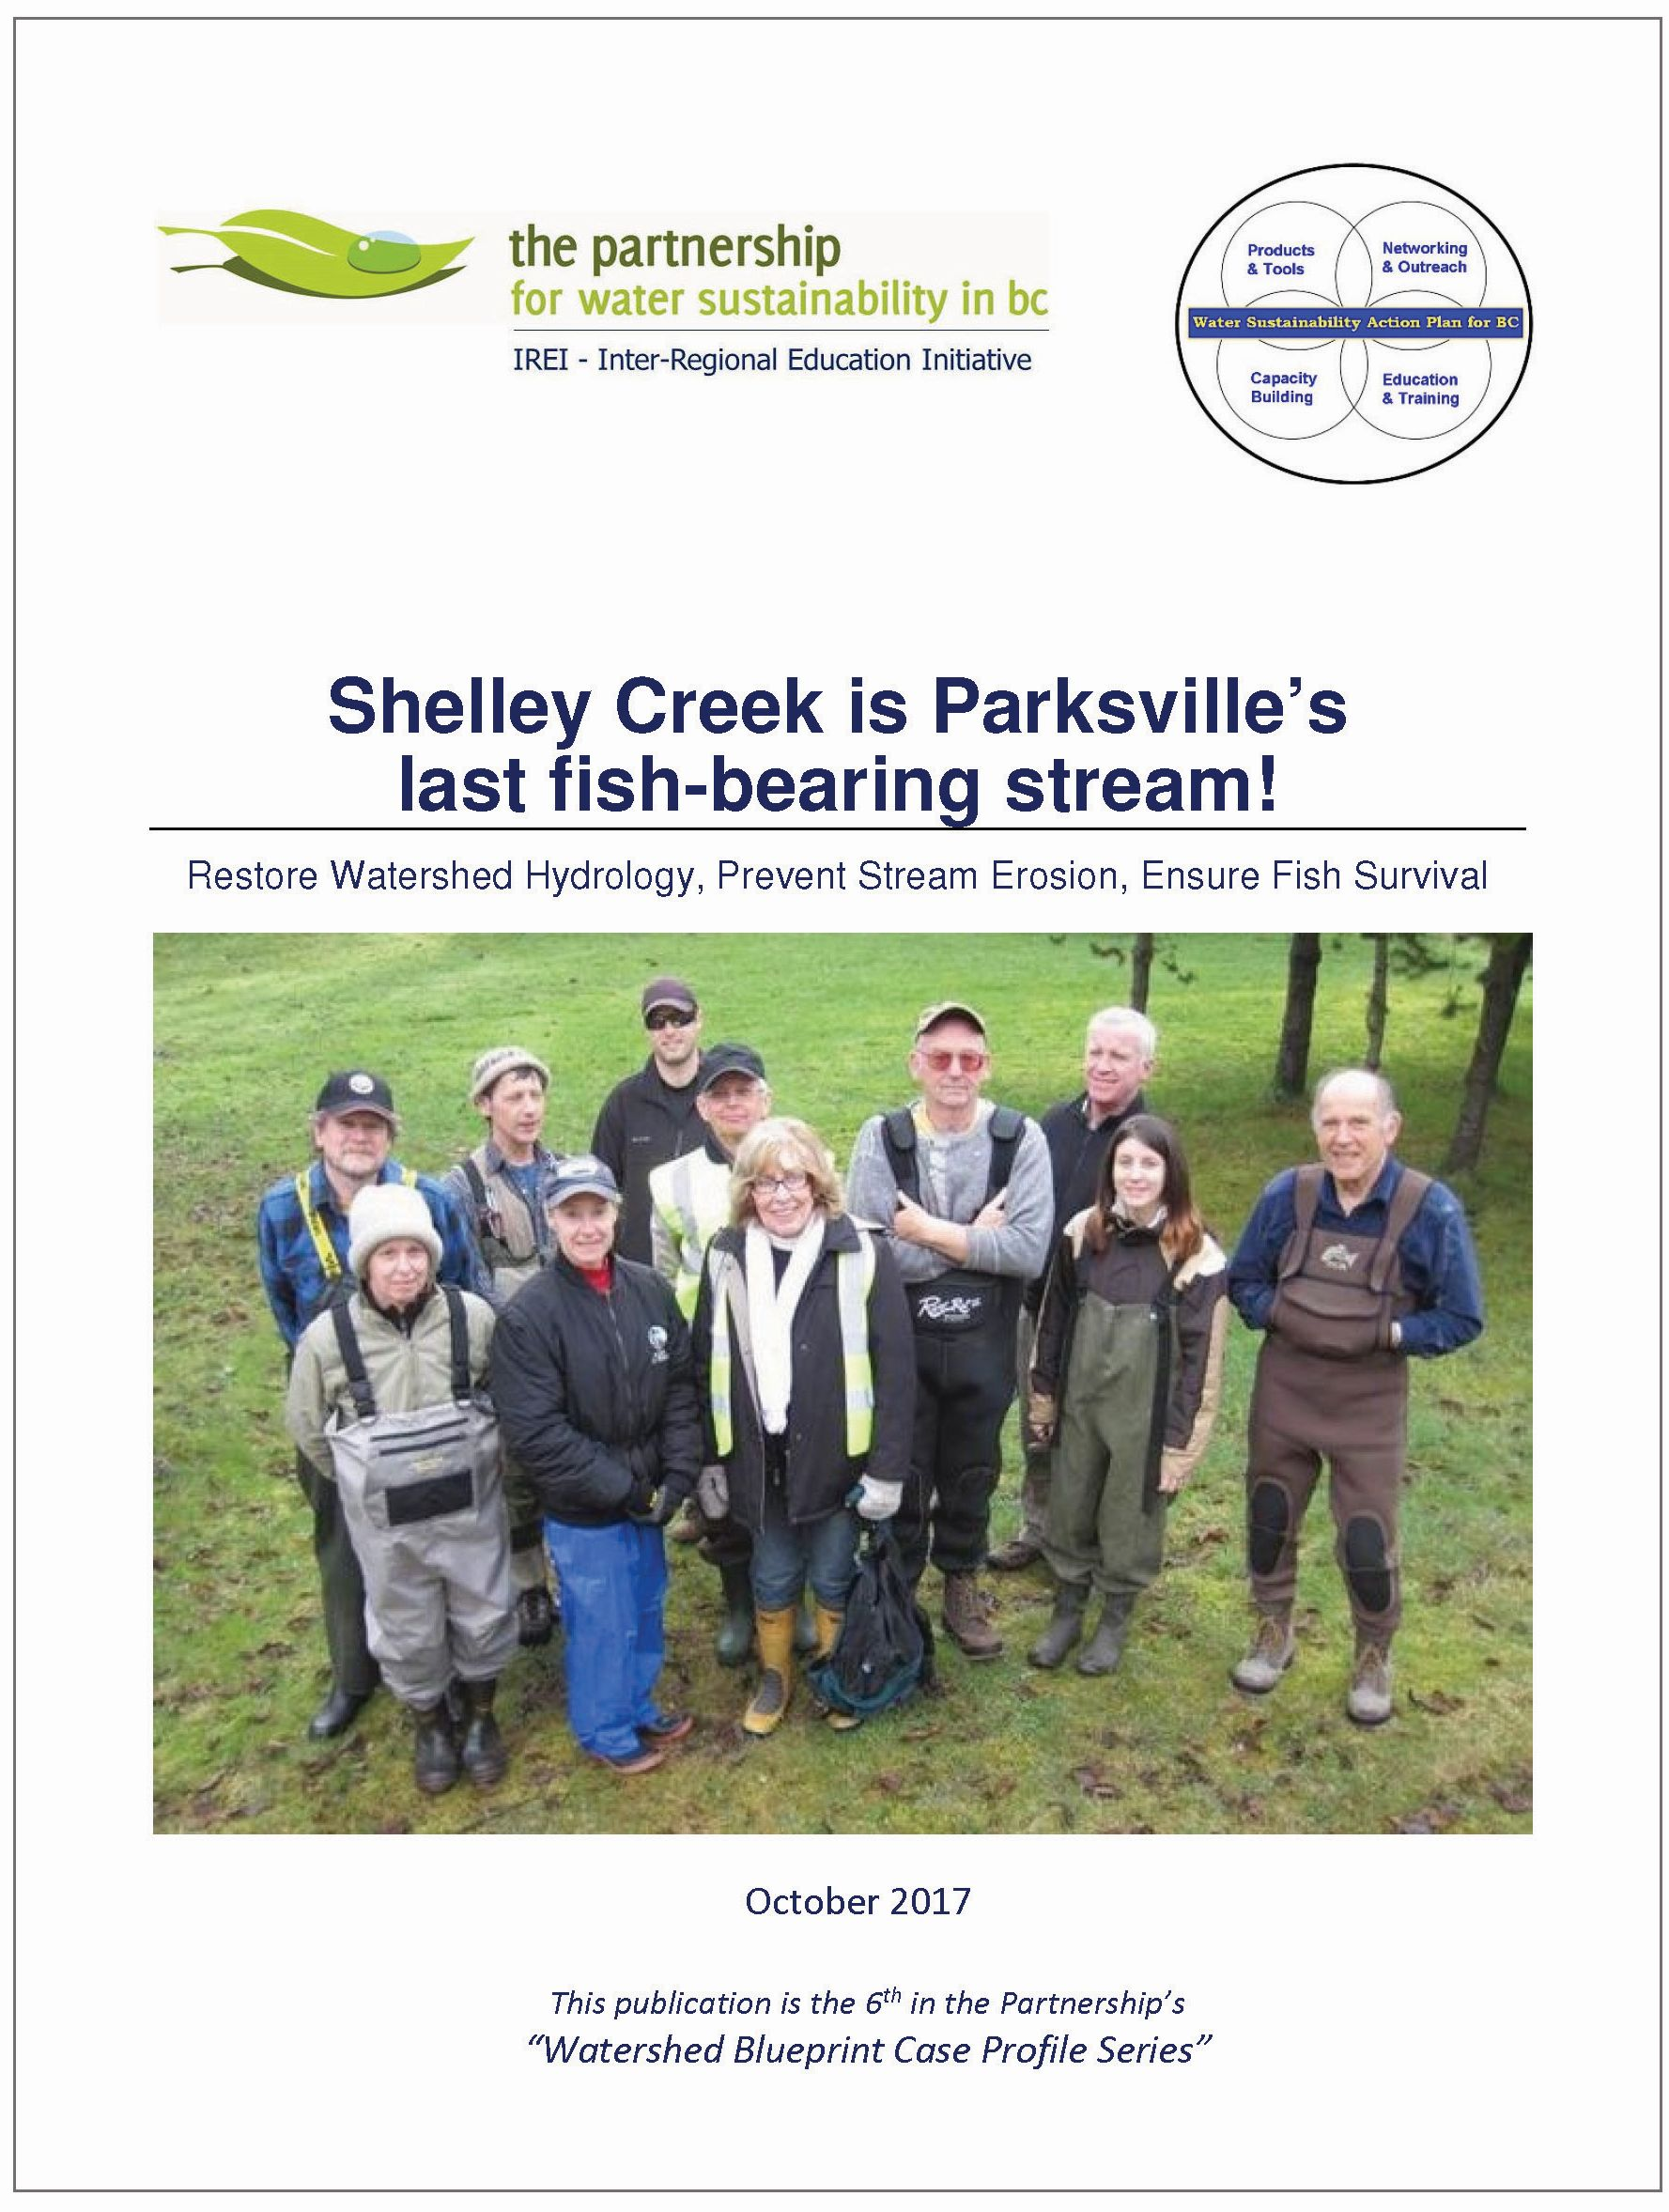 DOWNLOAD: https://waterbucket.ca/rm/files/2017/10/Shelly-Creek-Water-Balance-Demonstration_Oct2017.pdf